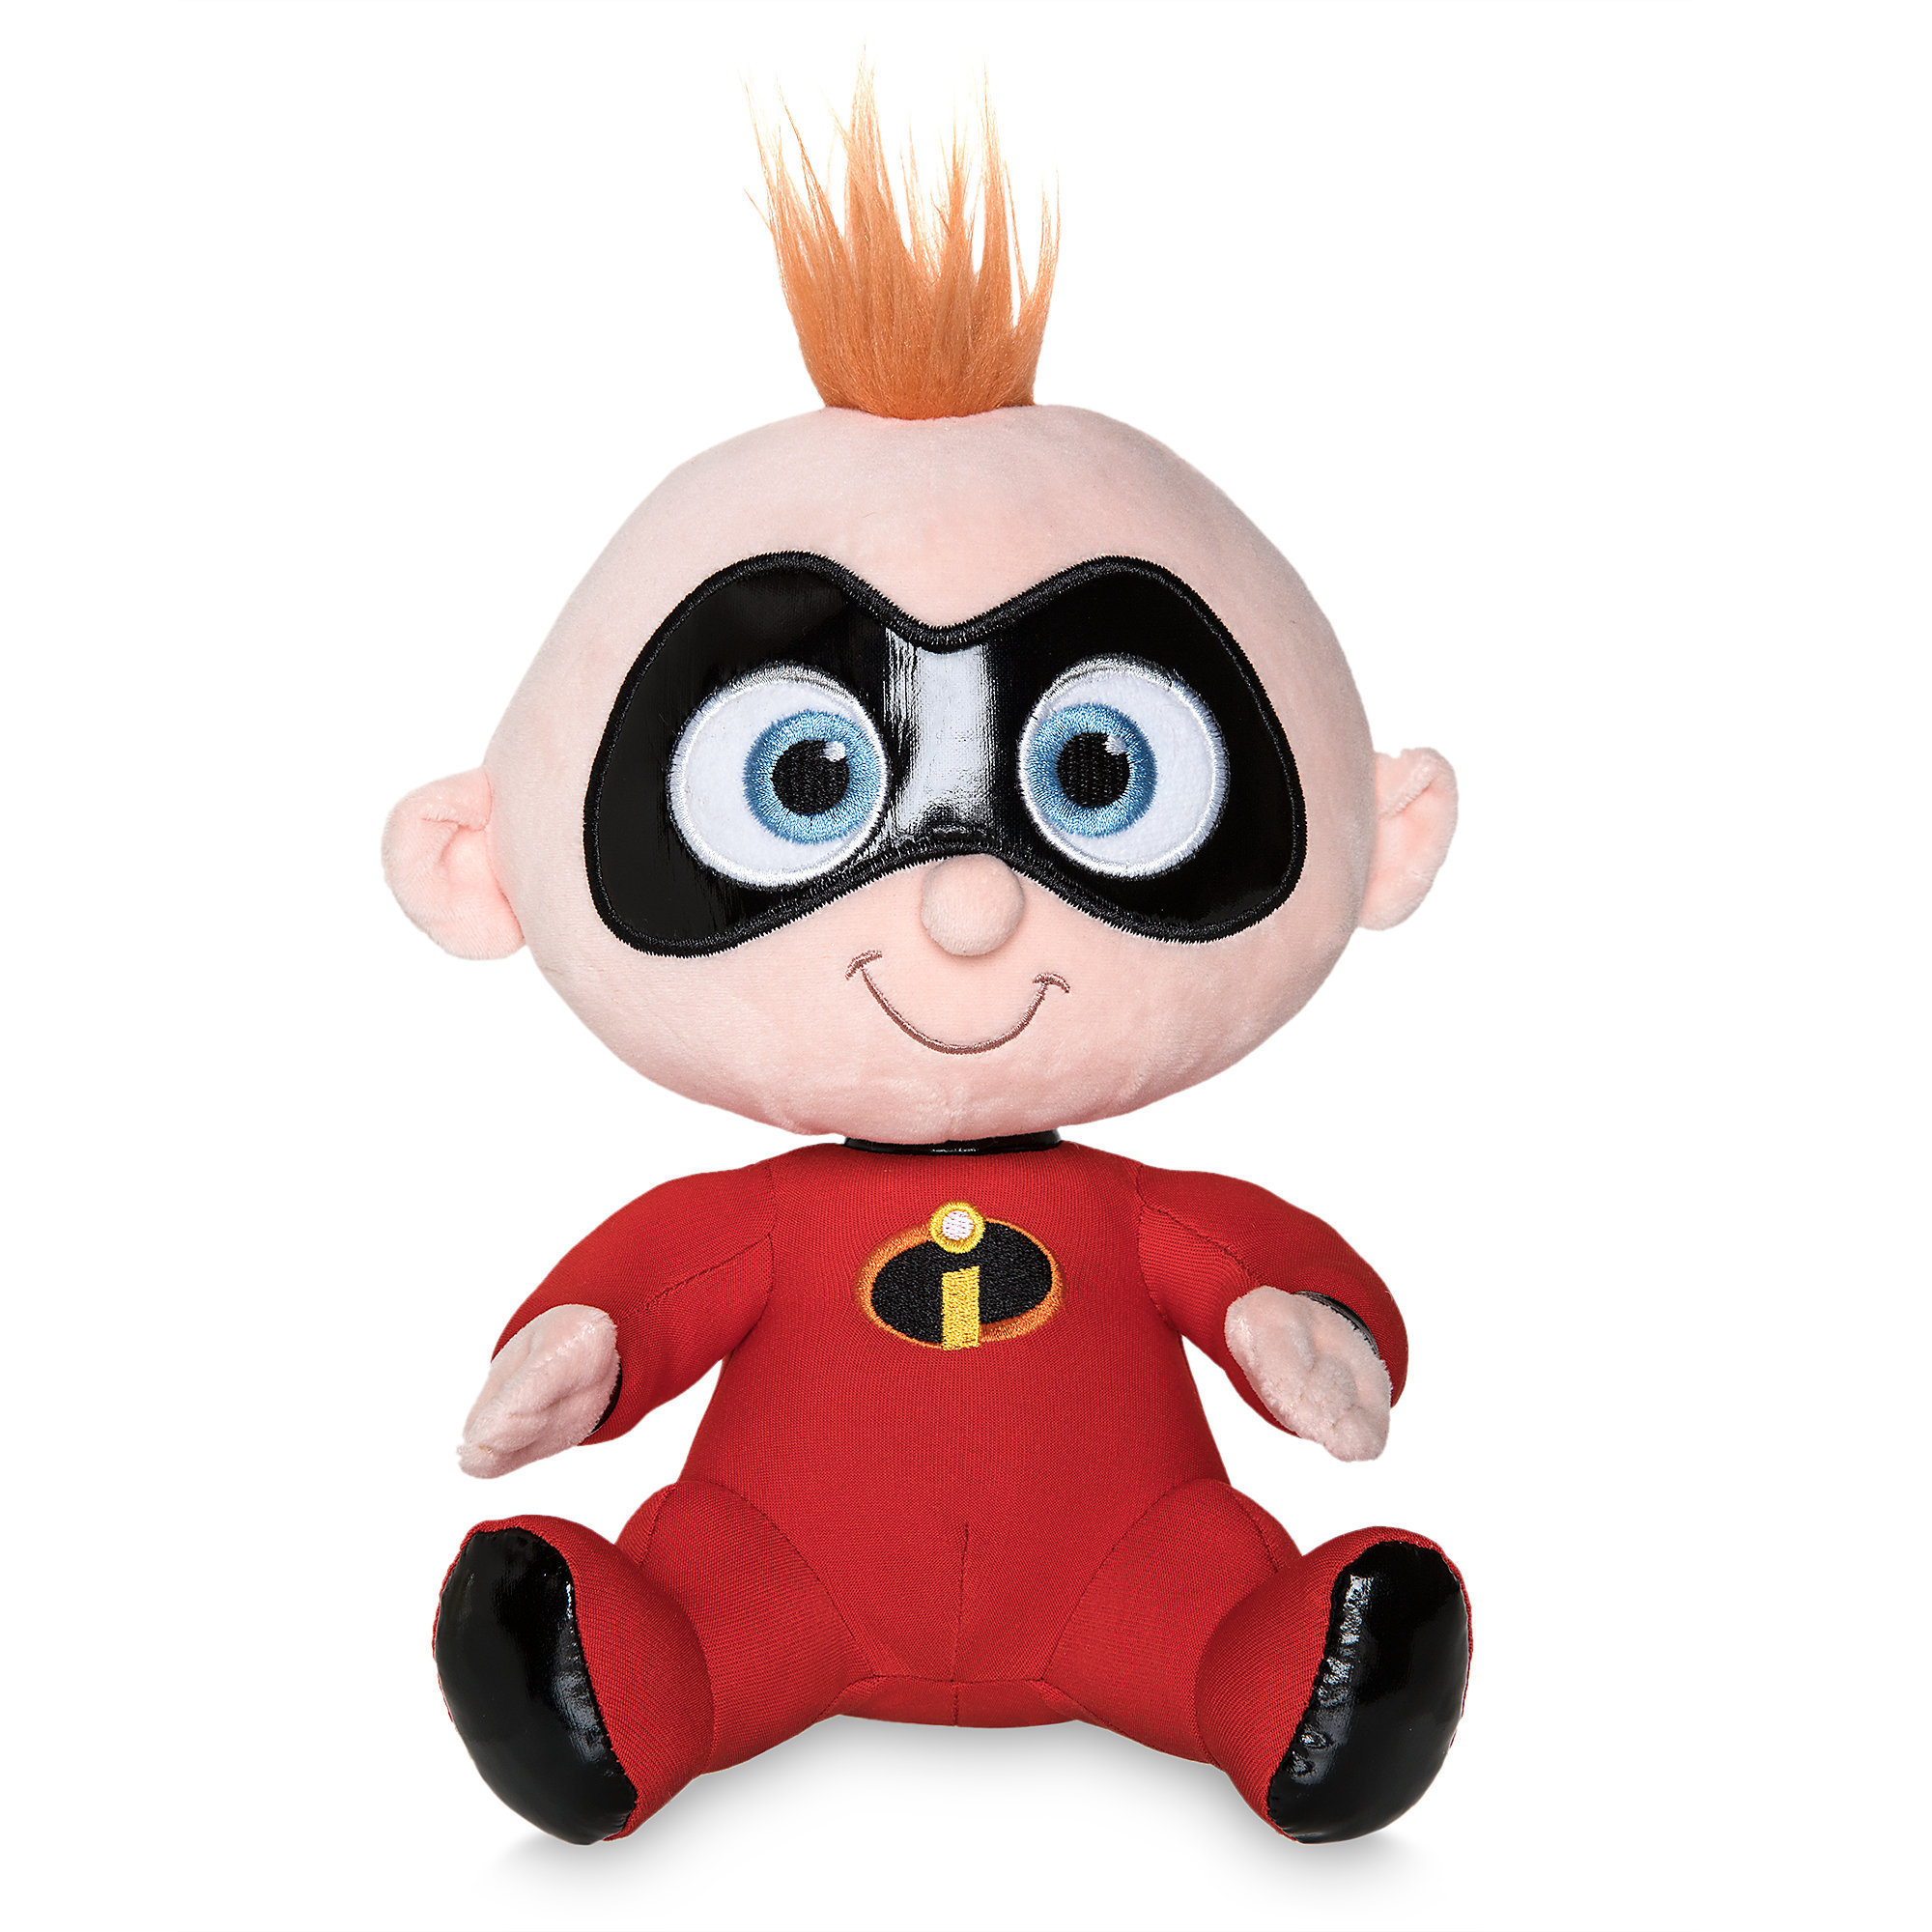 The Incredibles 2 Plush Jack-Jack Doll